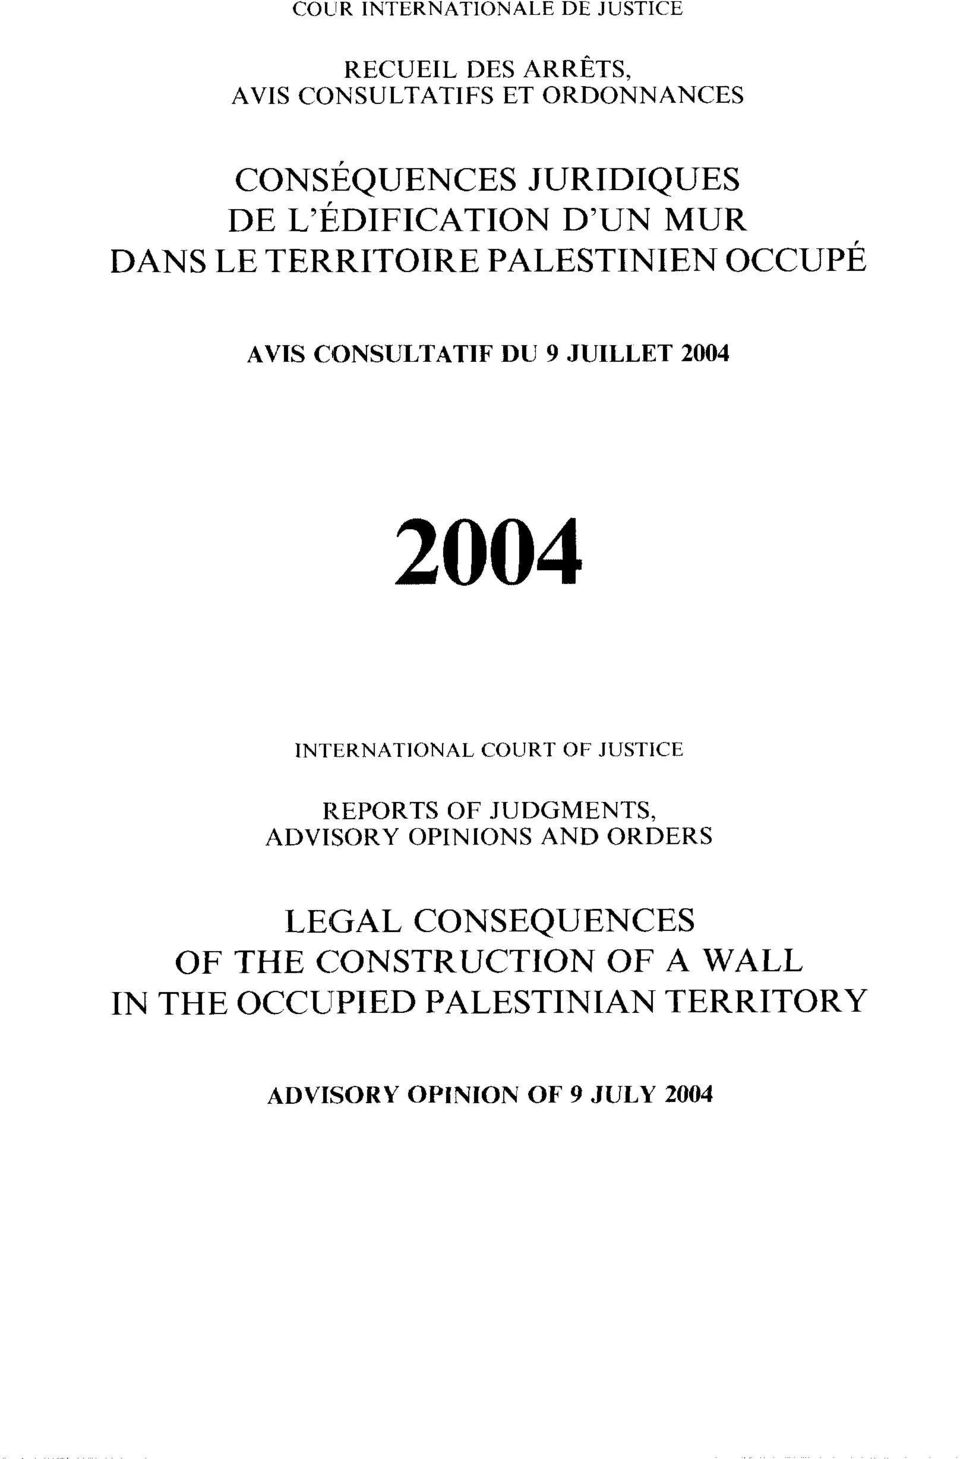 JUILLET 2004 INTERNATIONAL COURT OF JUSTICE REPORTS OF JUDGMENTS, ADVISORY OPINIONS AND ORDERS LEGAL